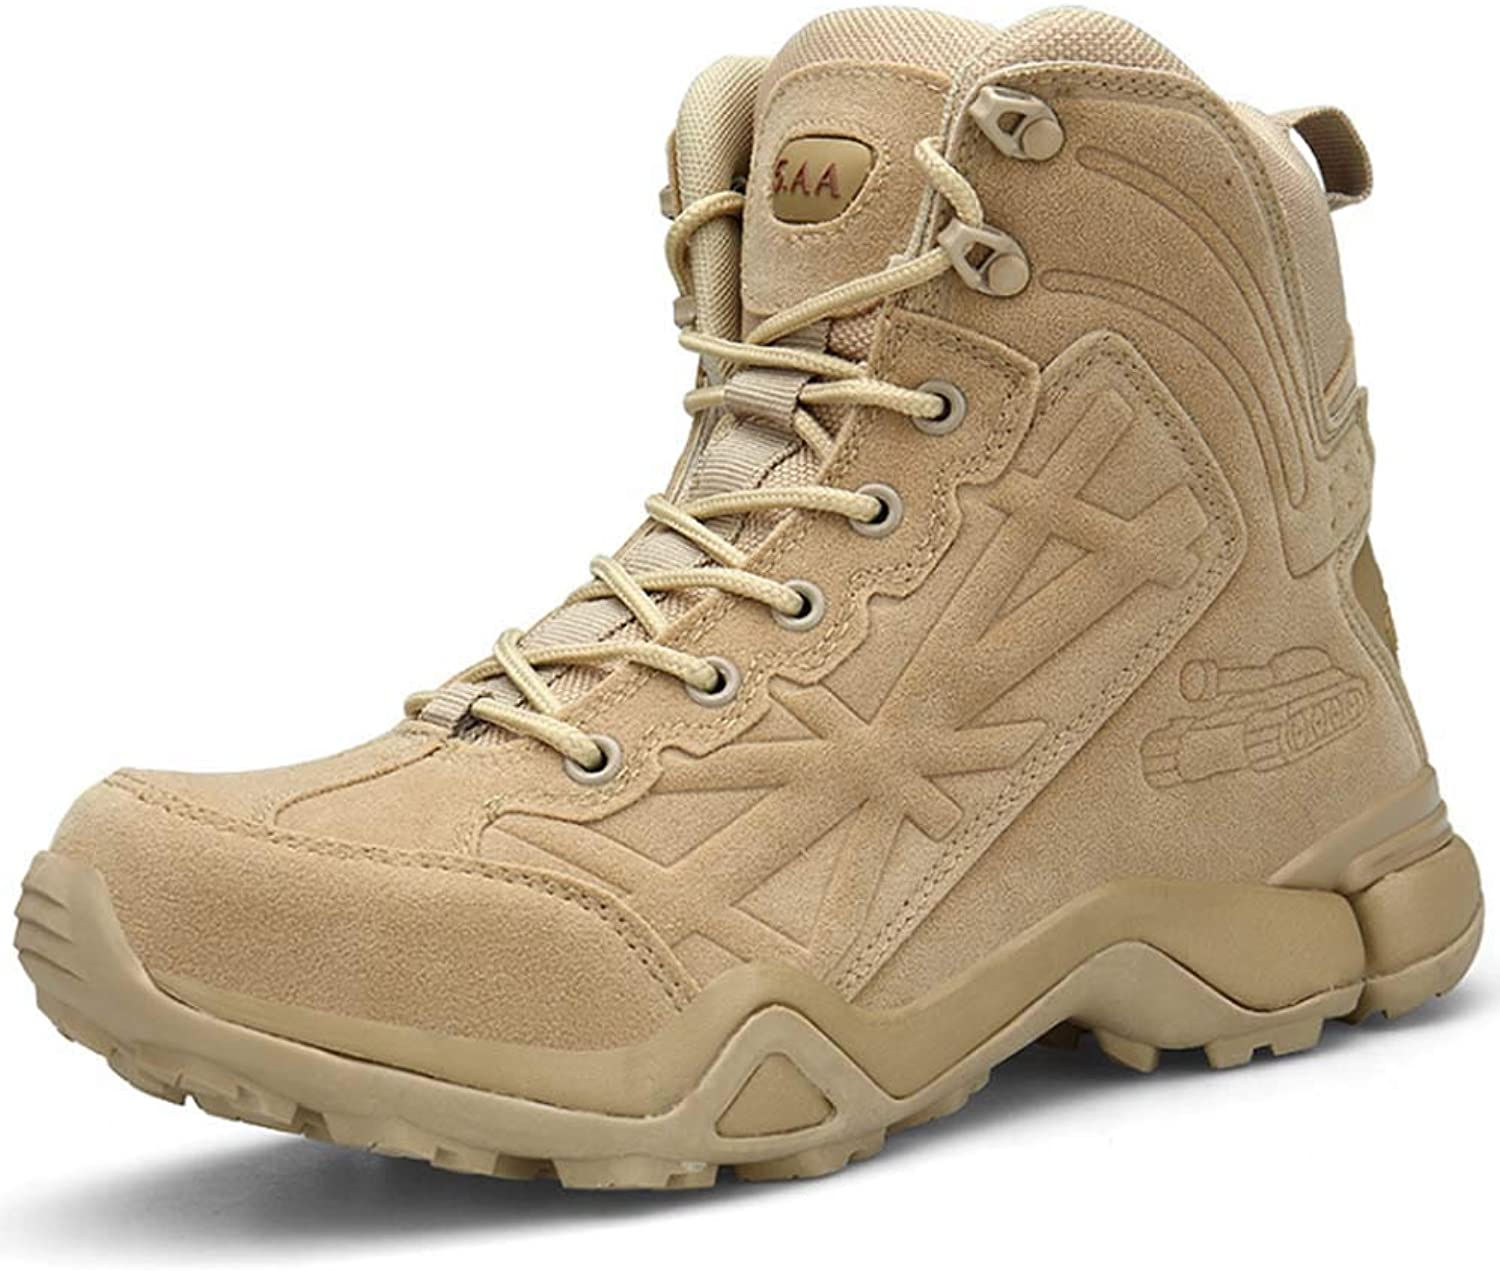 Men Hiking Boots,Military Tactical Combat Boots Womens Trekking shoes Lace-up Boot High Top Walking Climbing Sneakers